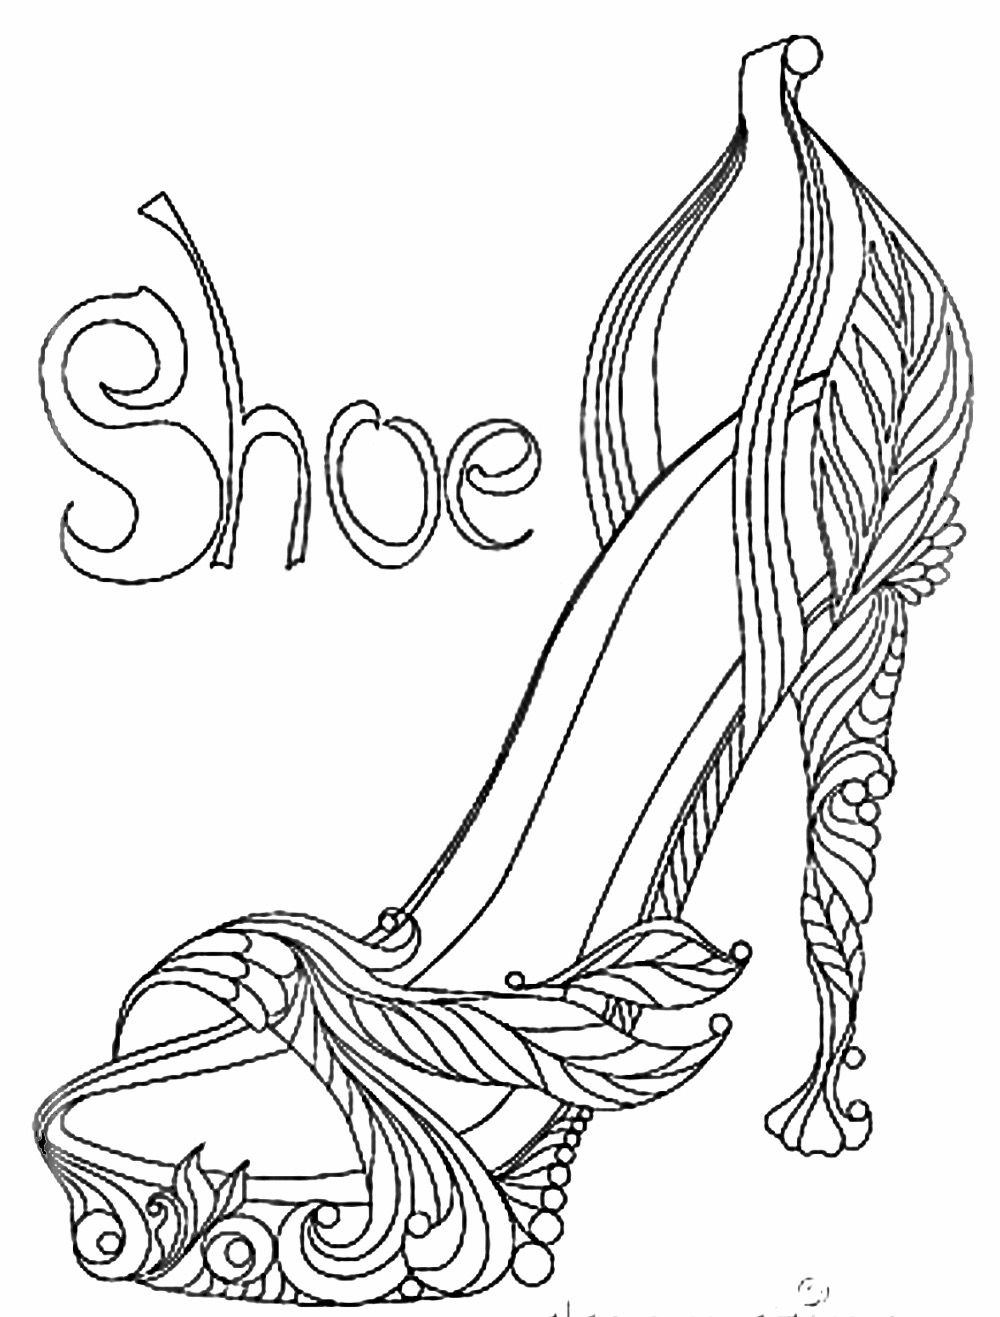 High Heel Shoe Coloring Page With Images People Coloring Pages